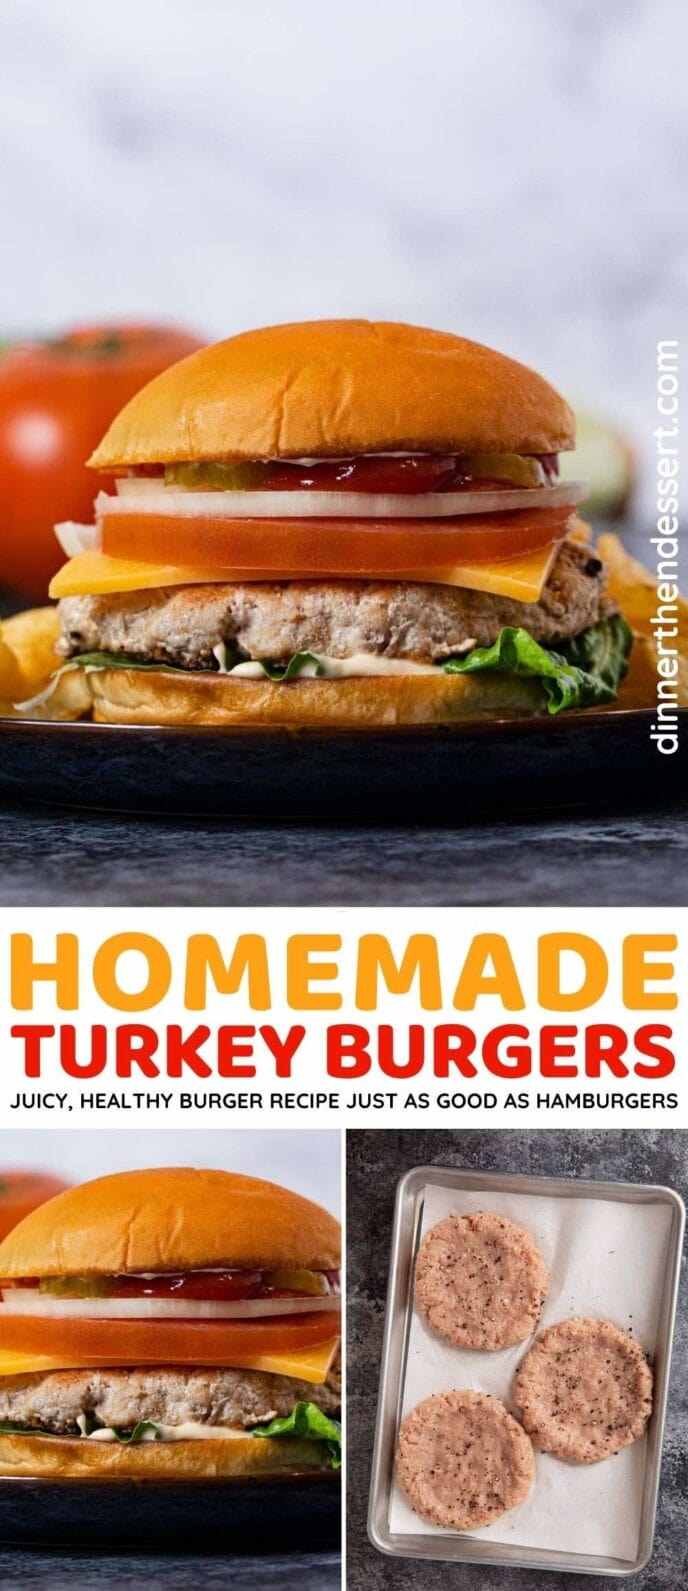 Homemade Turkey Burgers collage